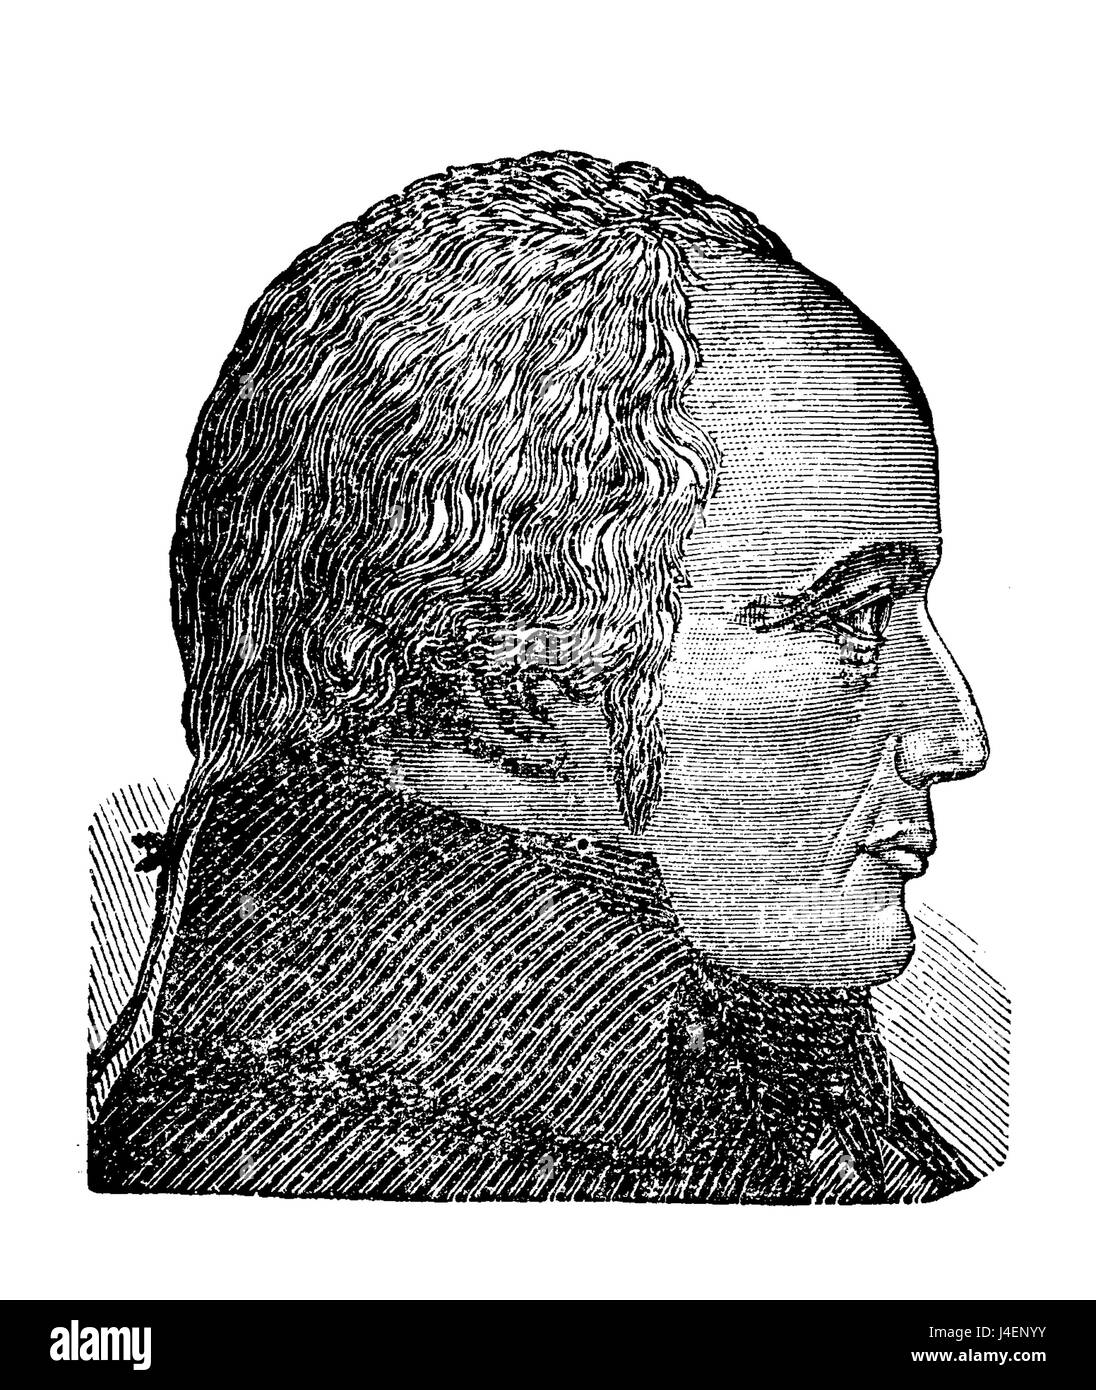 Franz Joseph Gall founder of phrenology, a pseudoscience about the brain localization of mental functions, vintage - Stock Image